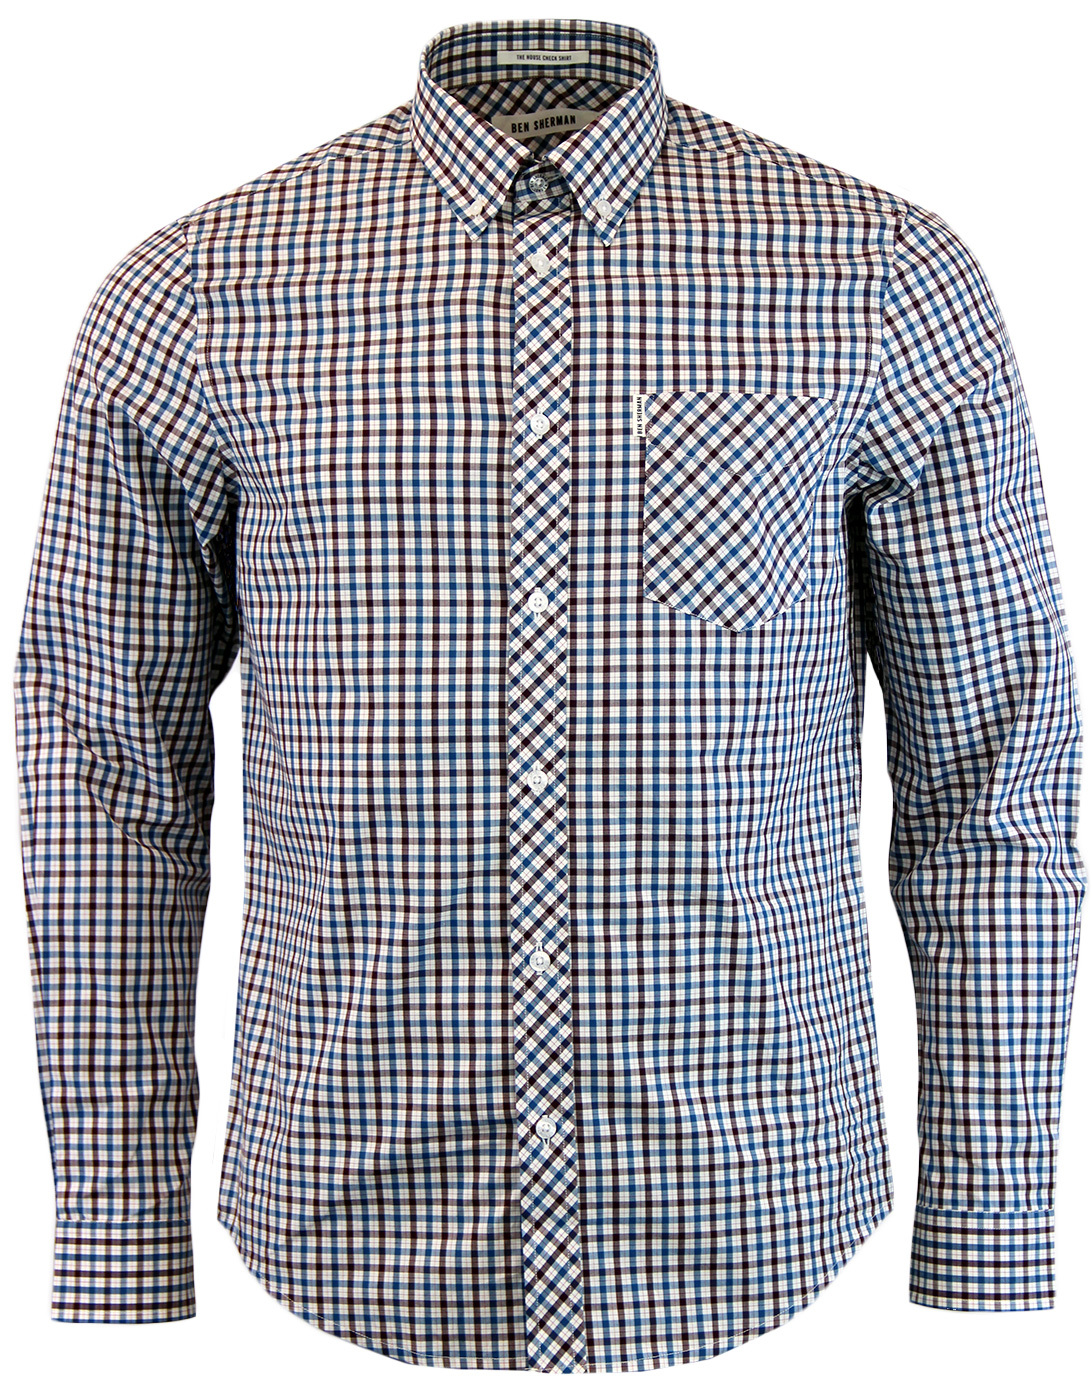 Ben Sherman 60s Mod Heritage House Check Shirt In Blue